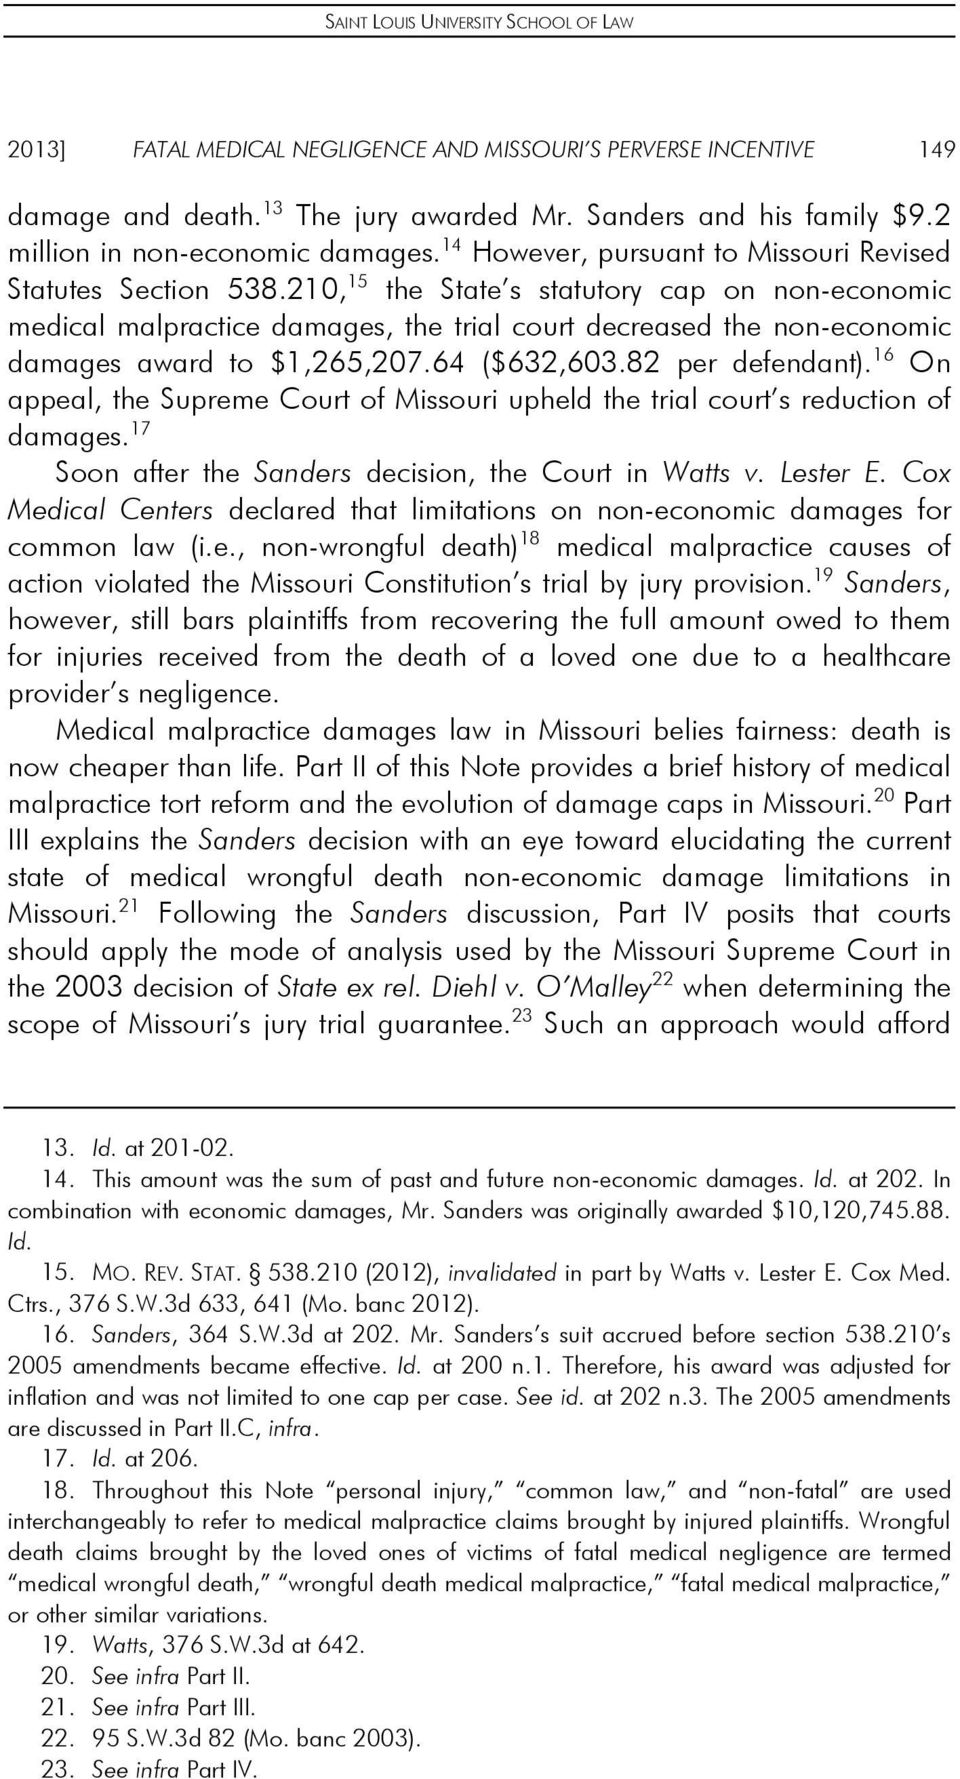 210, 15 the State s statutory cap on non-economic medical malpractice damages, the trial court decreased the non-economic damages award to $1,265,207.64 ($632,603.82 per defendant).